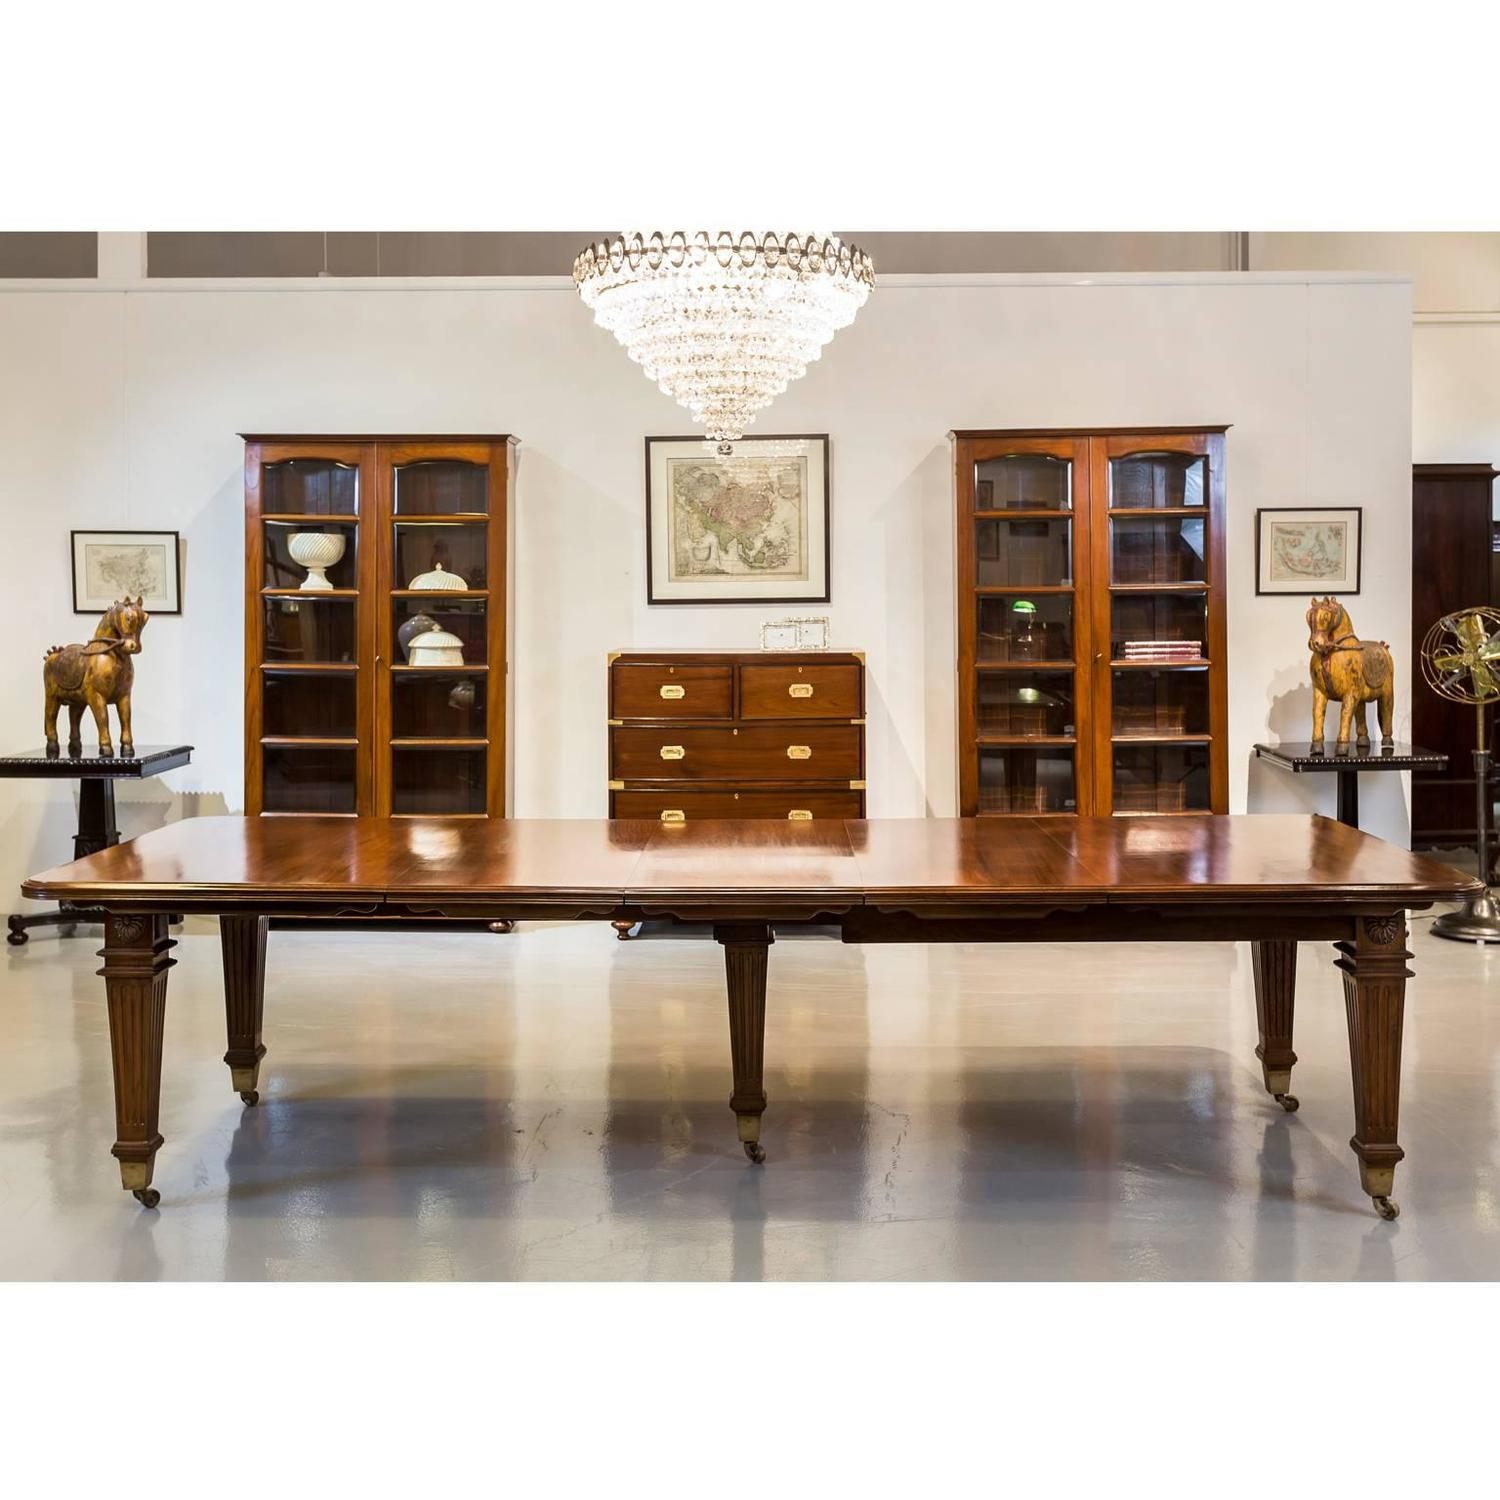 anglo indian or british colonial teakwood extending dining